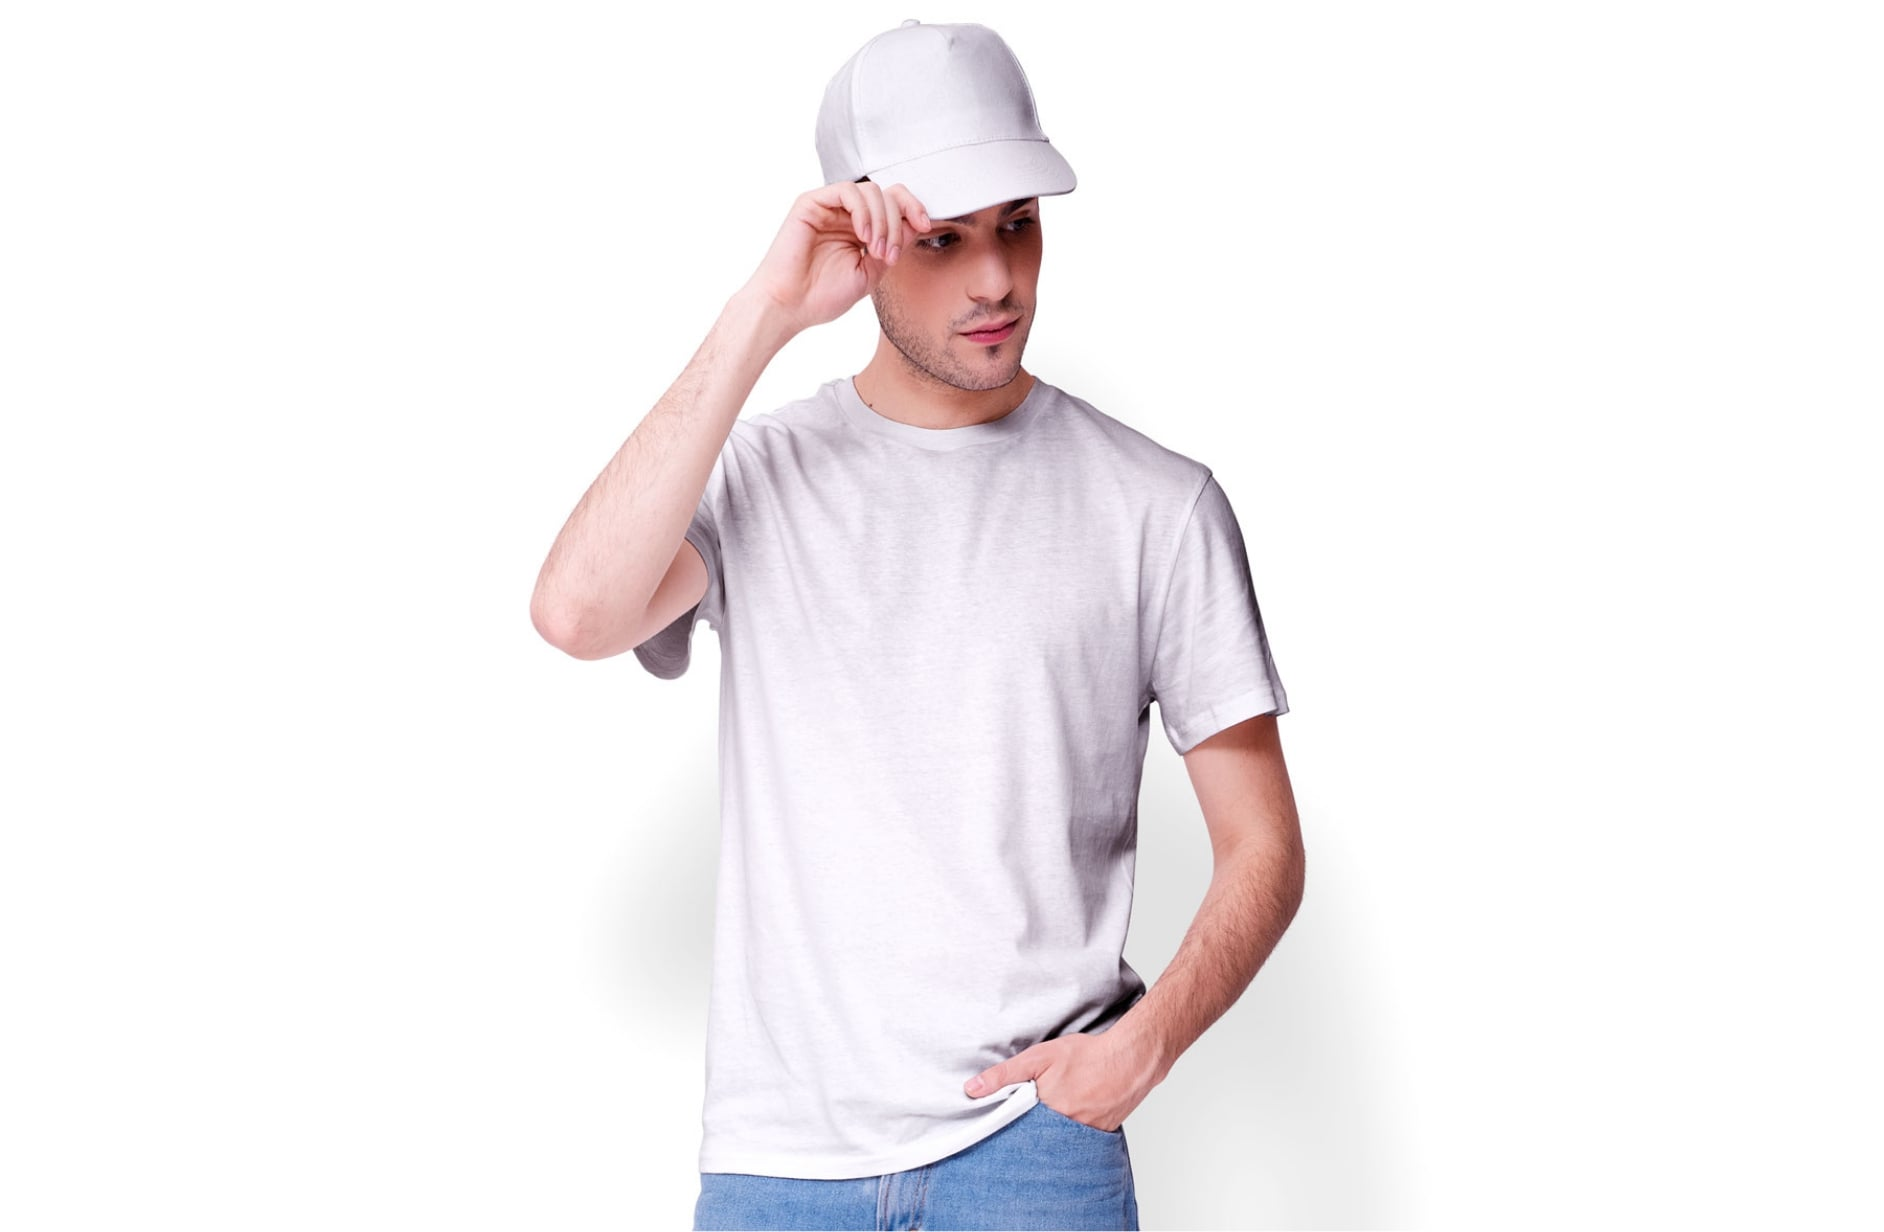 Man with a t-shirt and cap empty white mockup